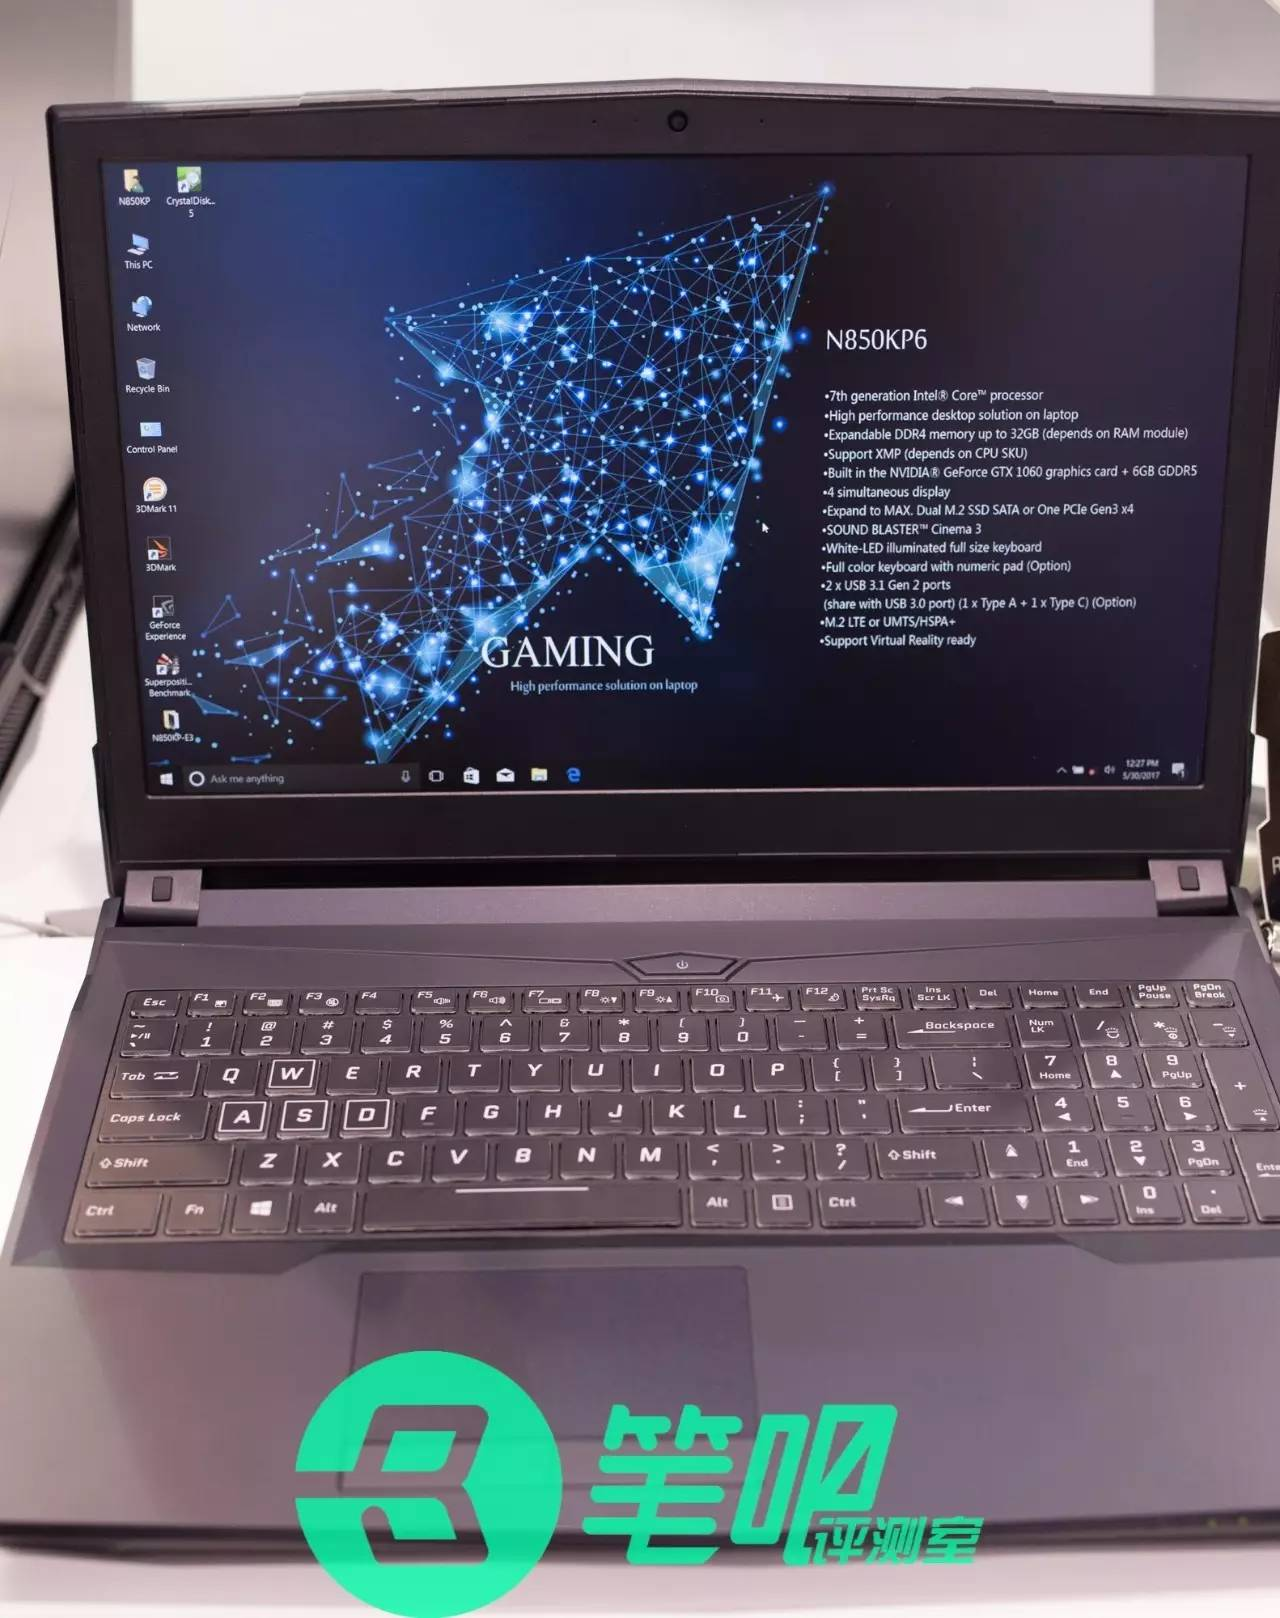 New N850KP6 chassis   NotebookReview